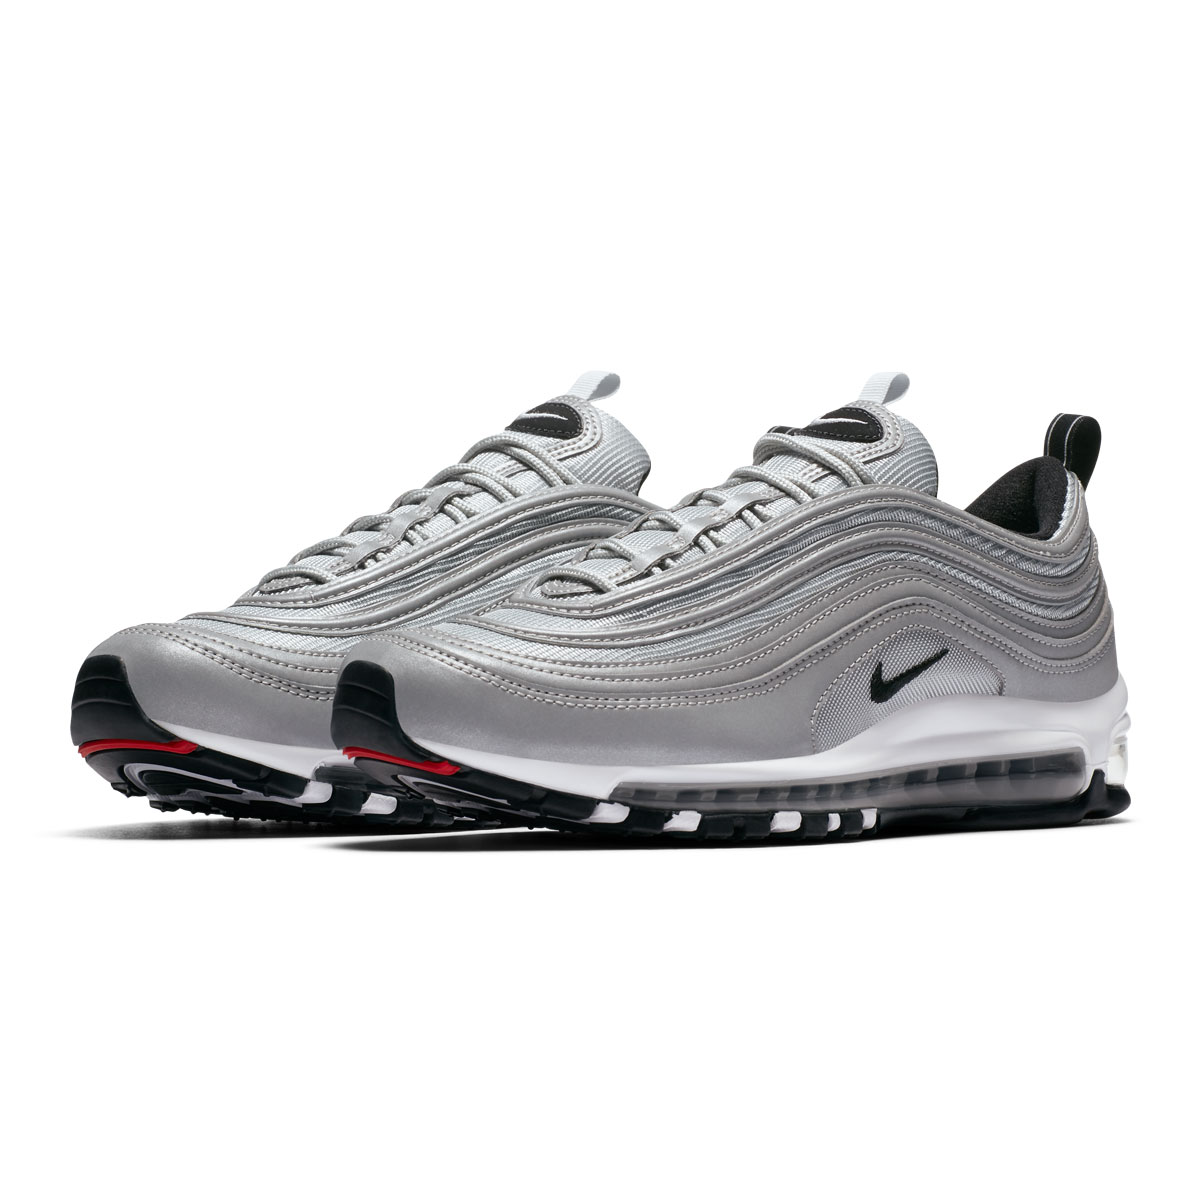 it carried bithe bulldog air of the full length and air max 97 which expressed speed altogether crea